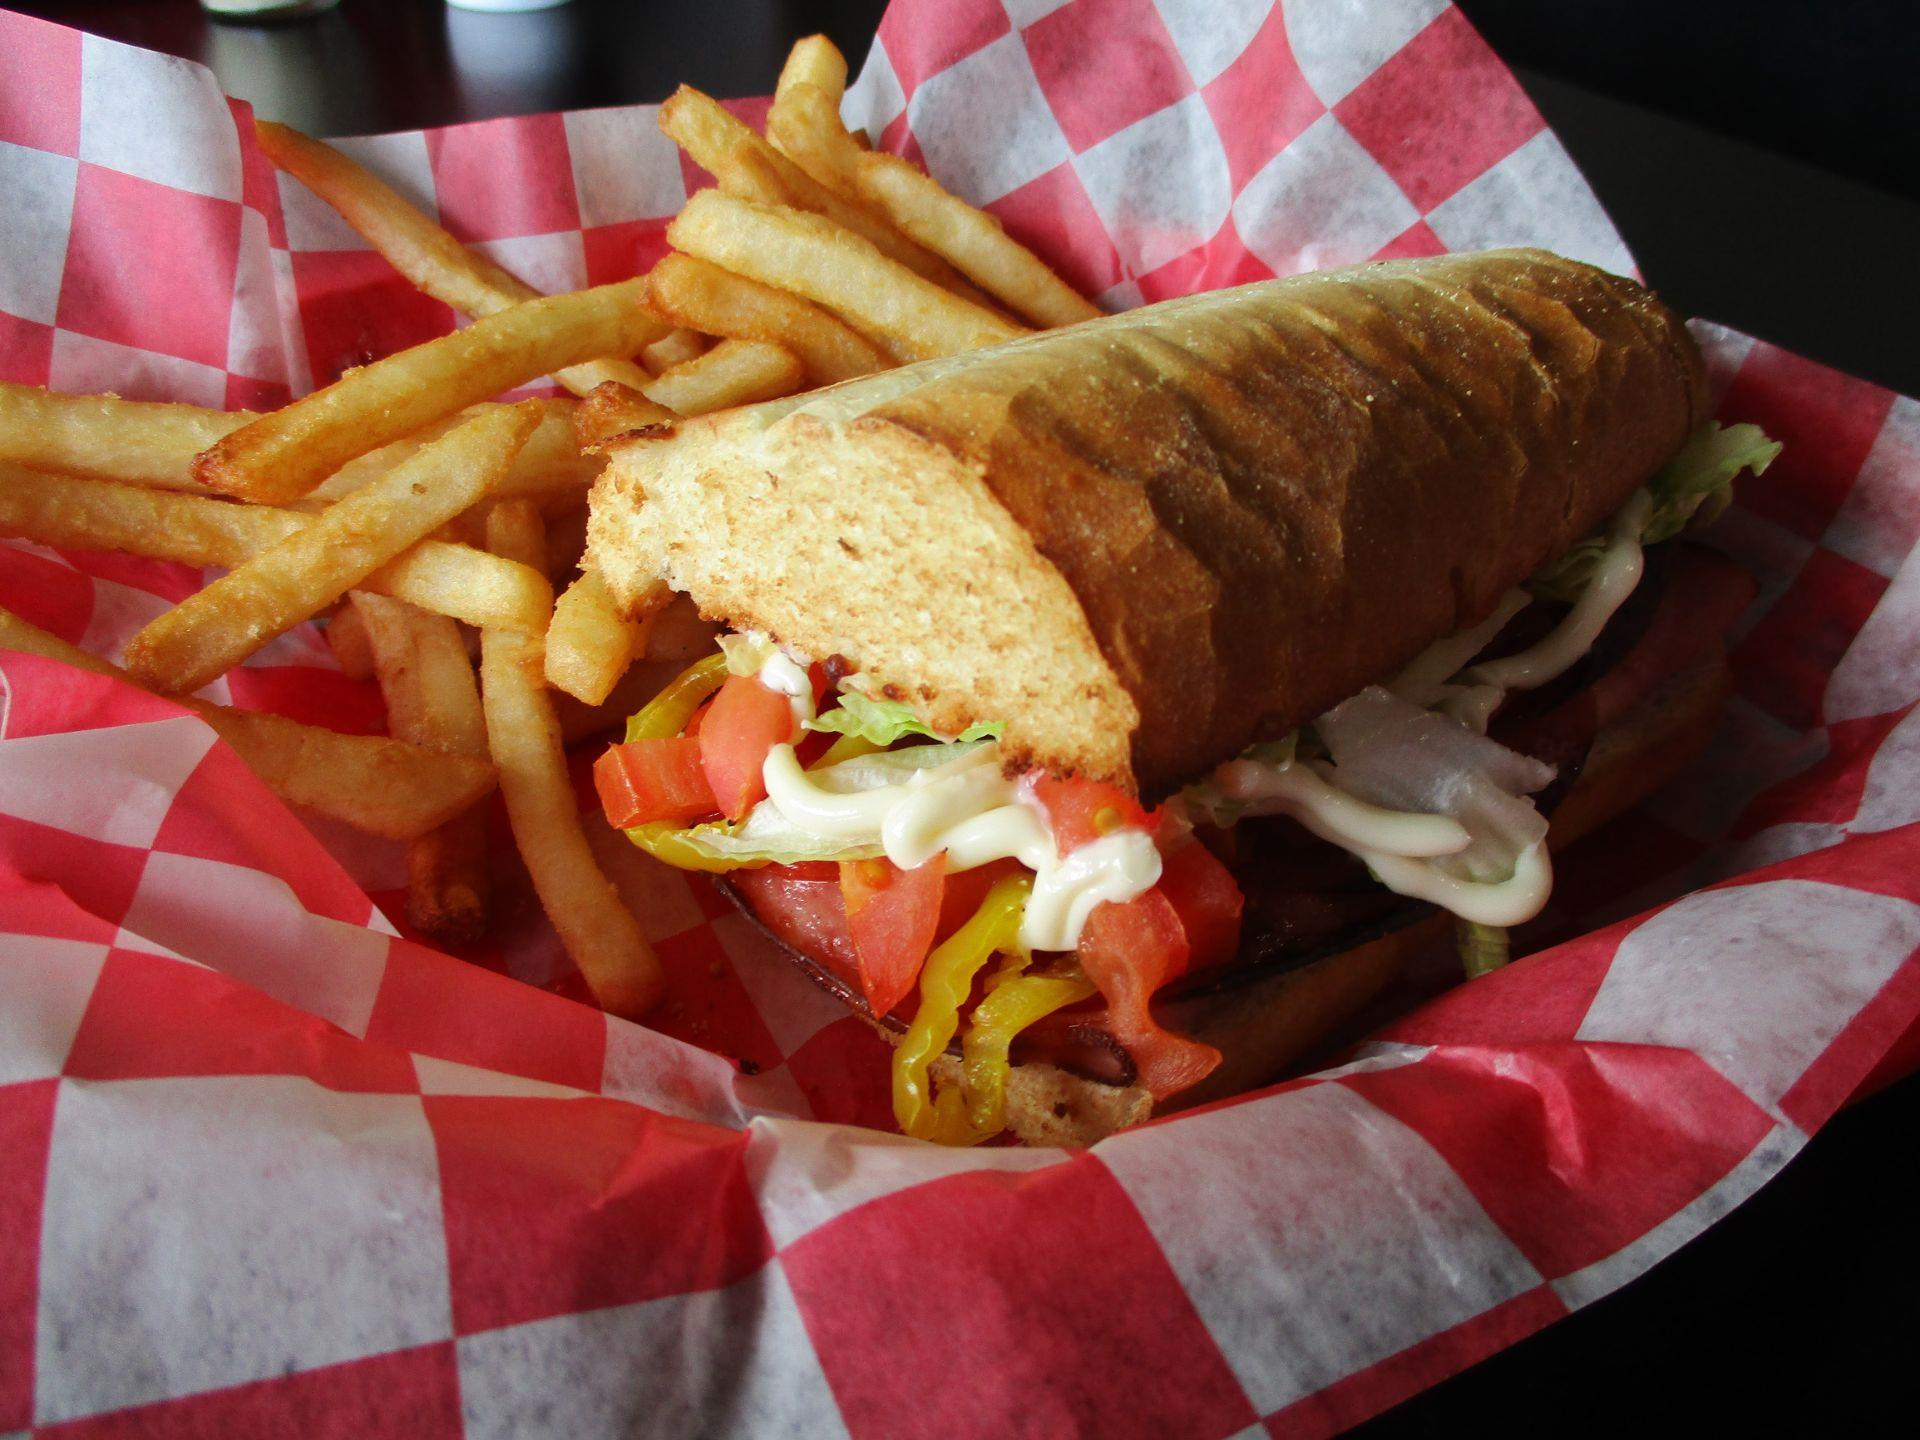 Toasted Italian sub in a basket with fries